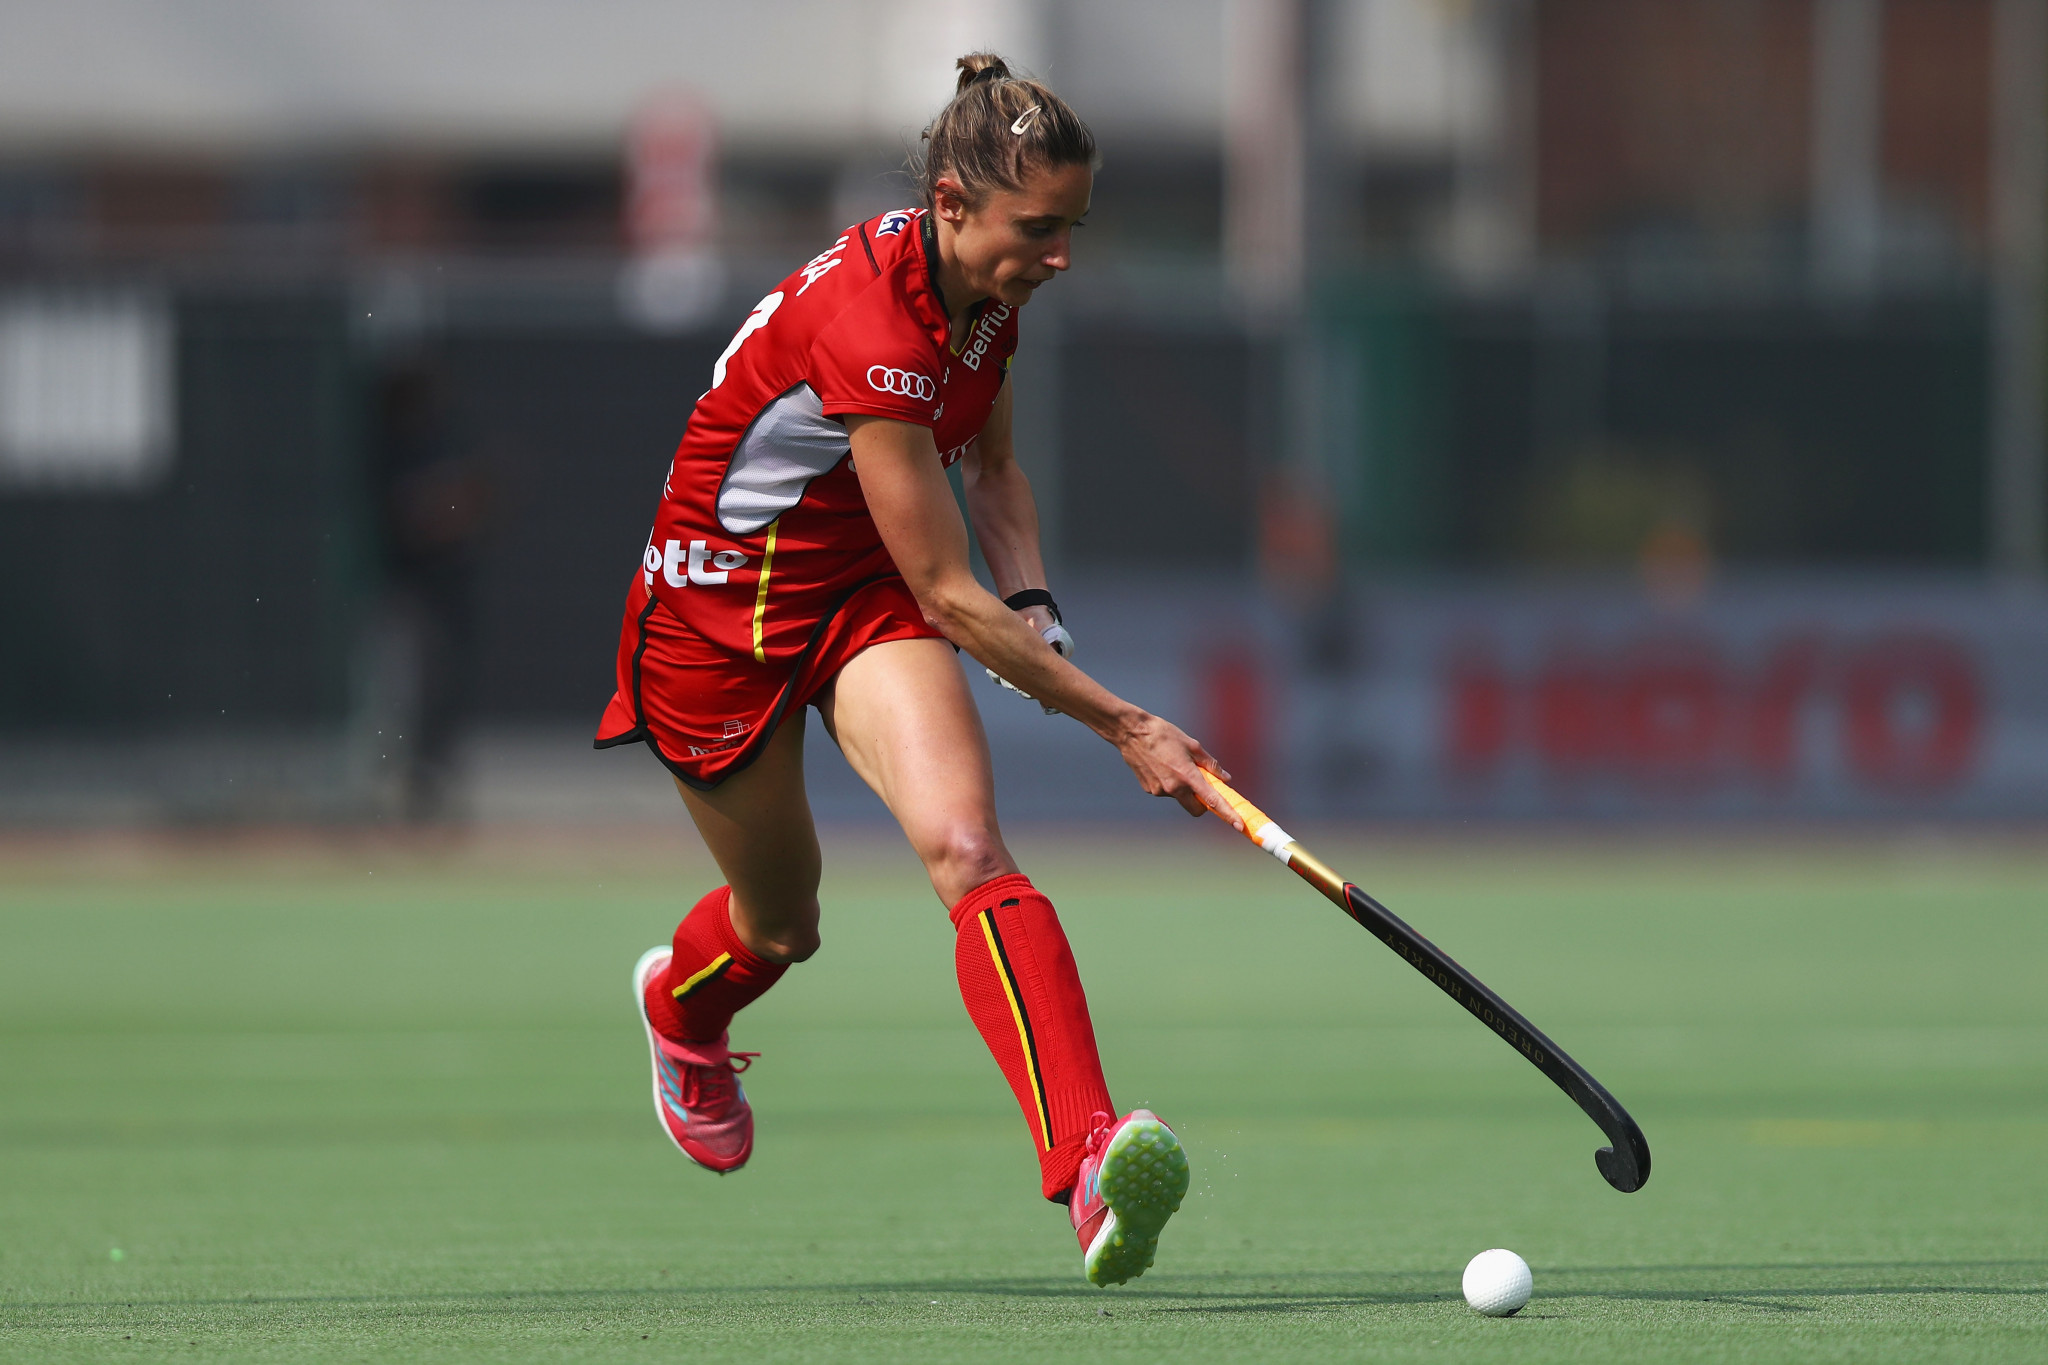 Emilie Sinia was on target for Belgium against China ©Getty Images